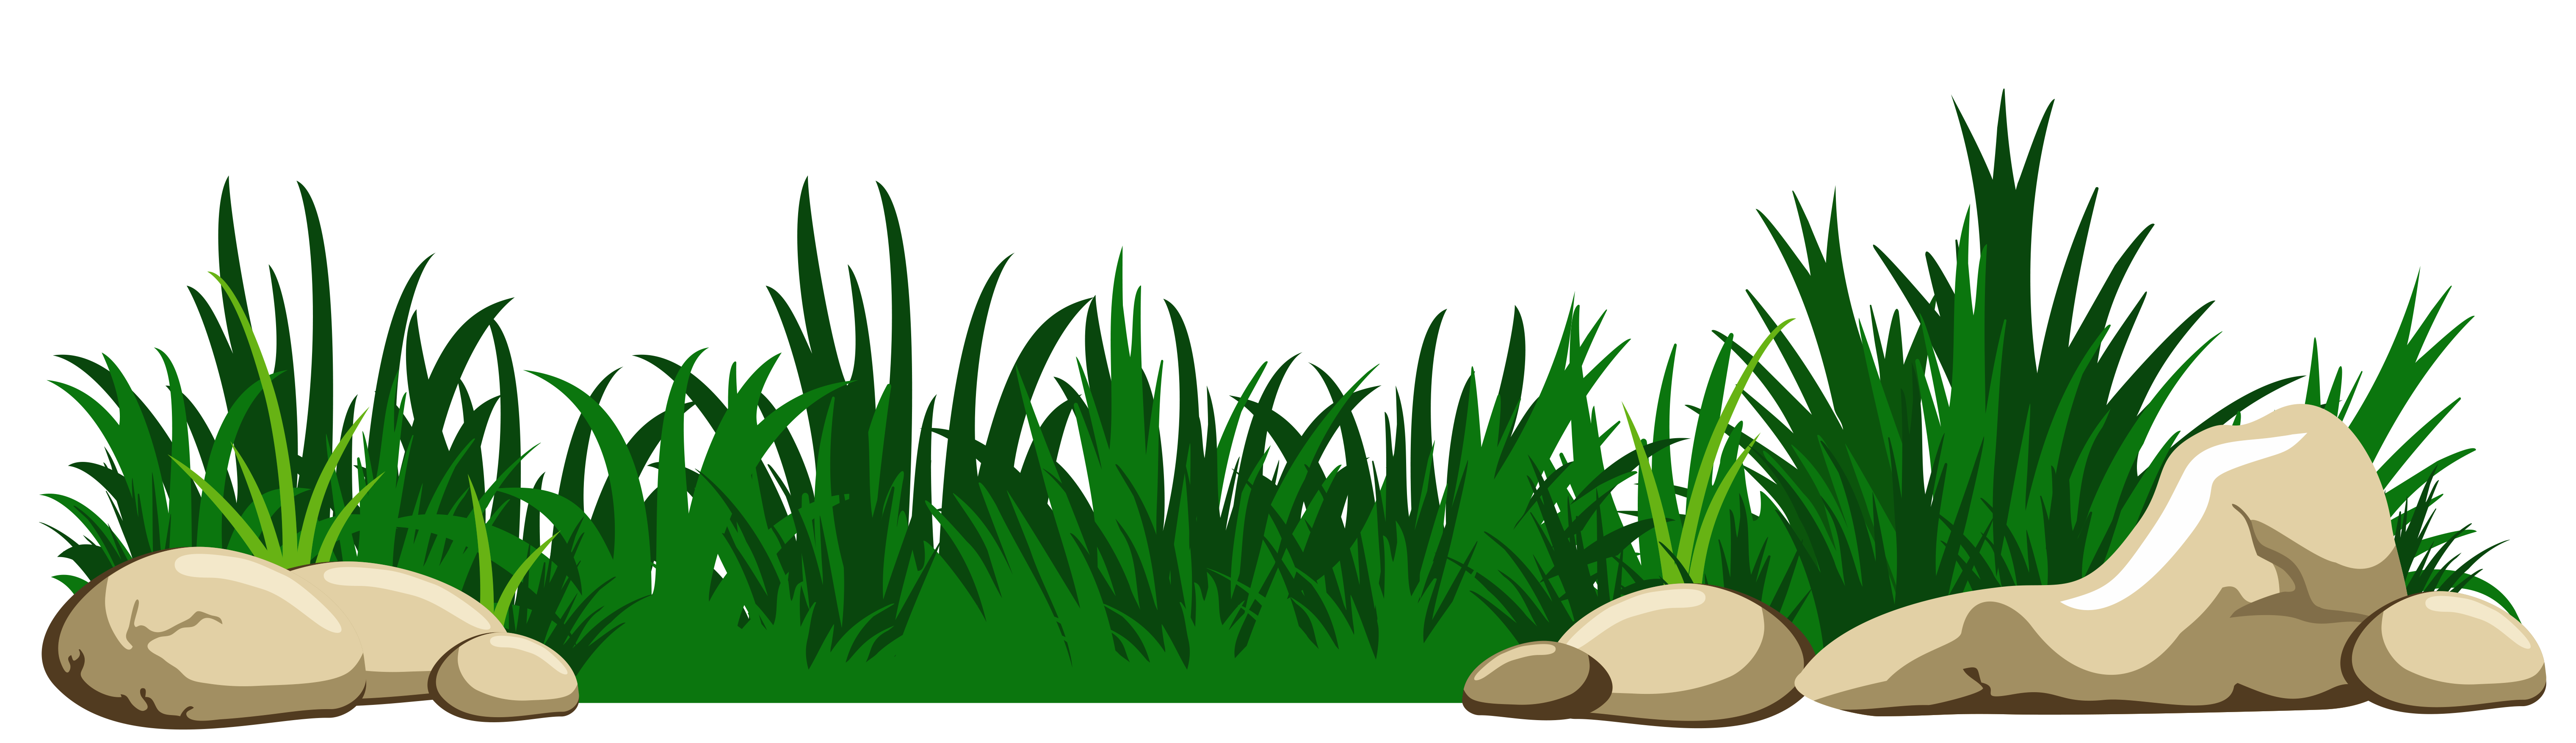 Clipart grass rock. With rocks transparent png